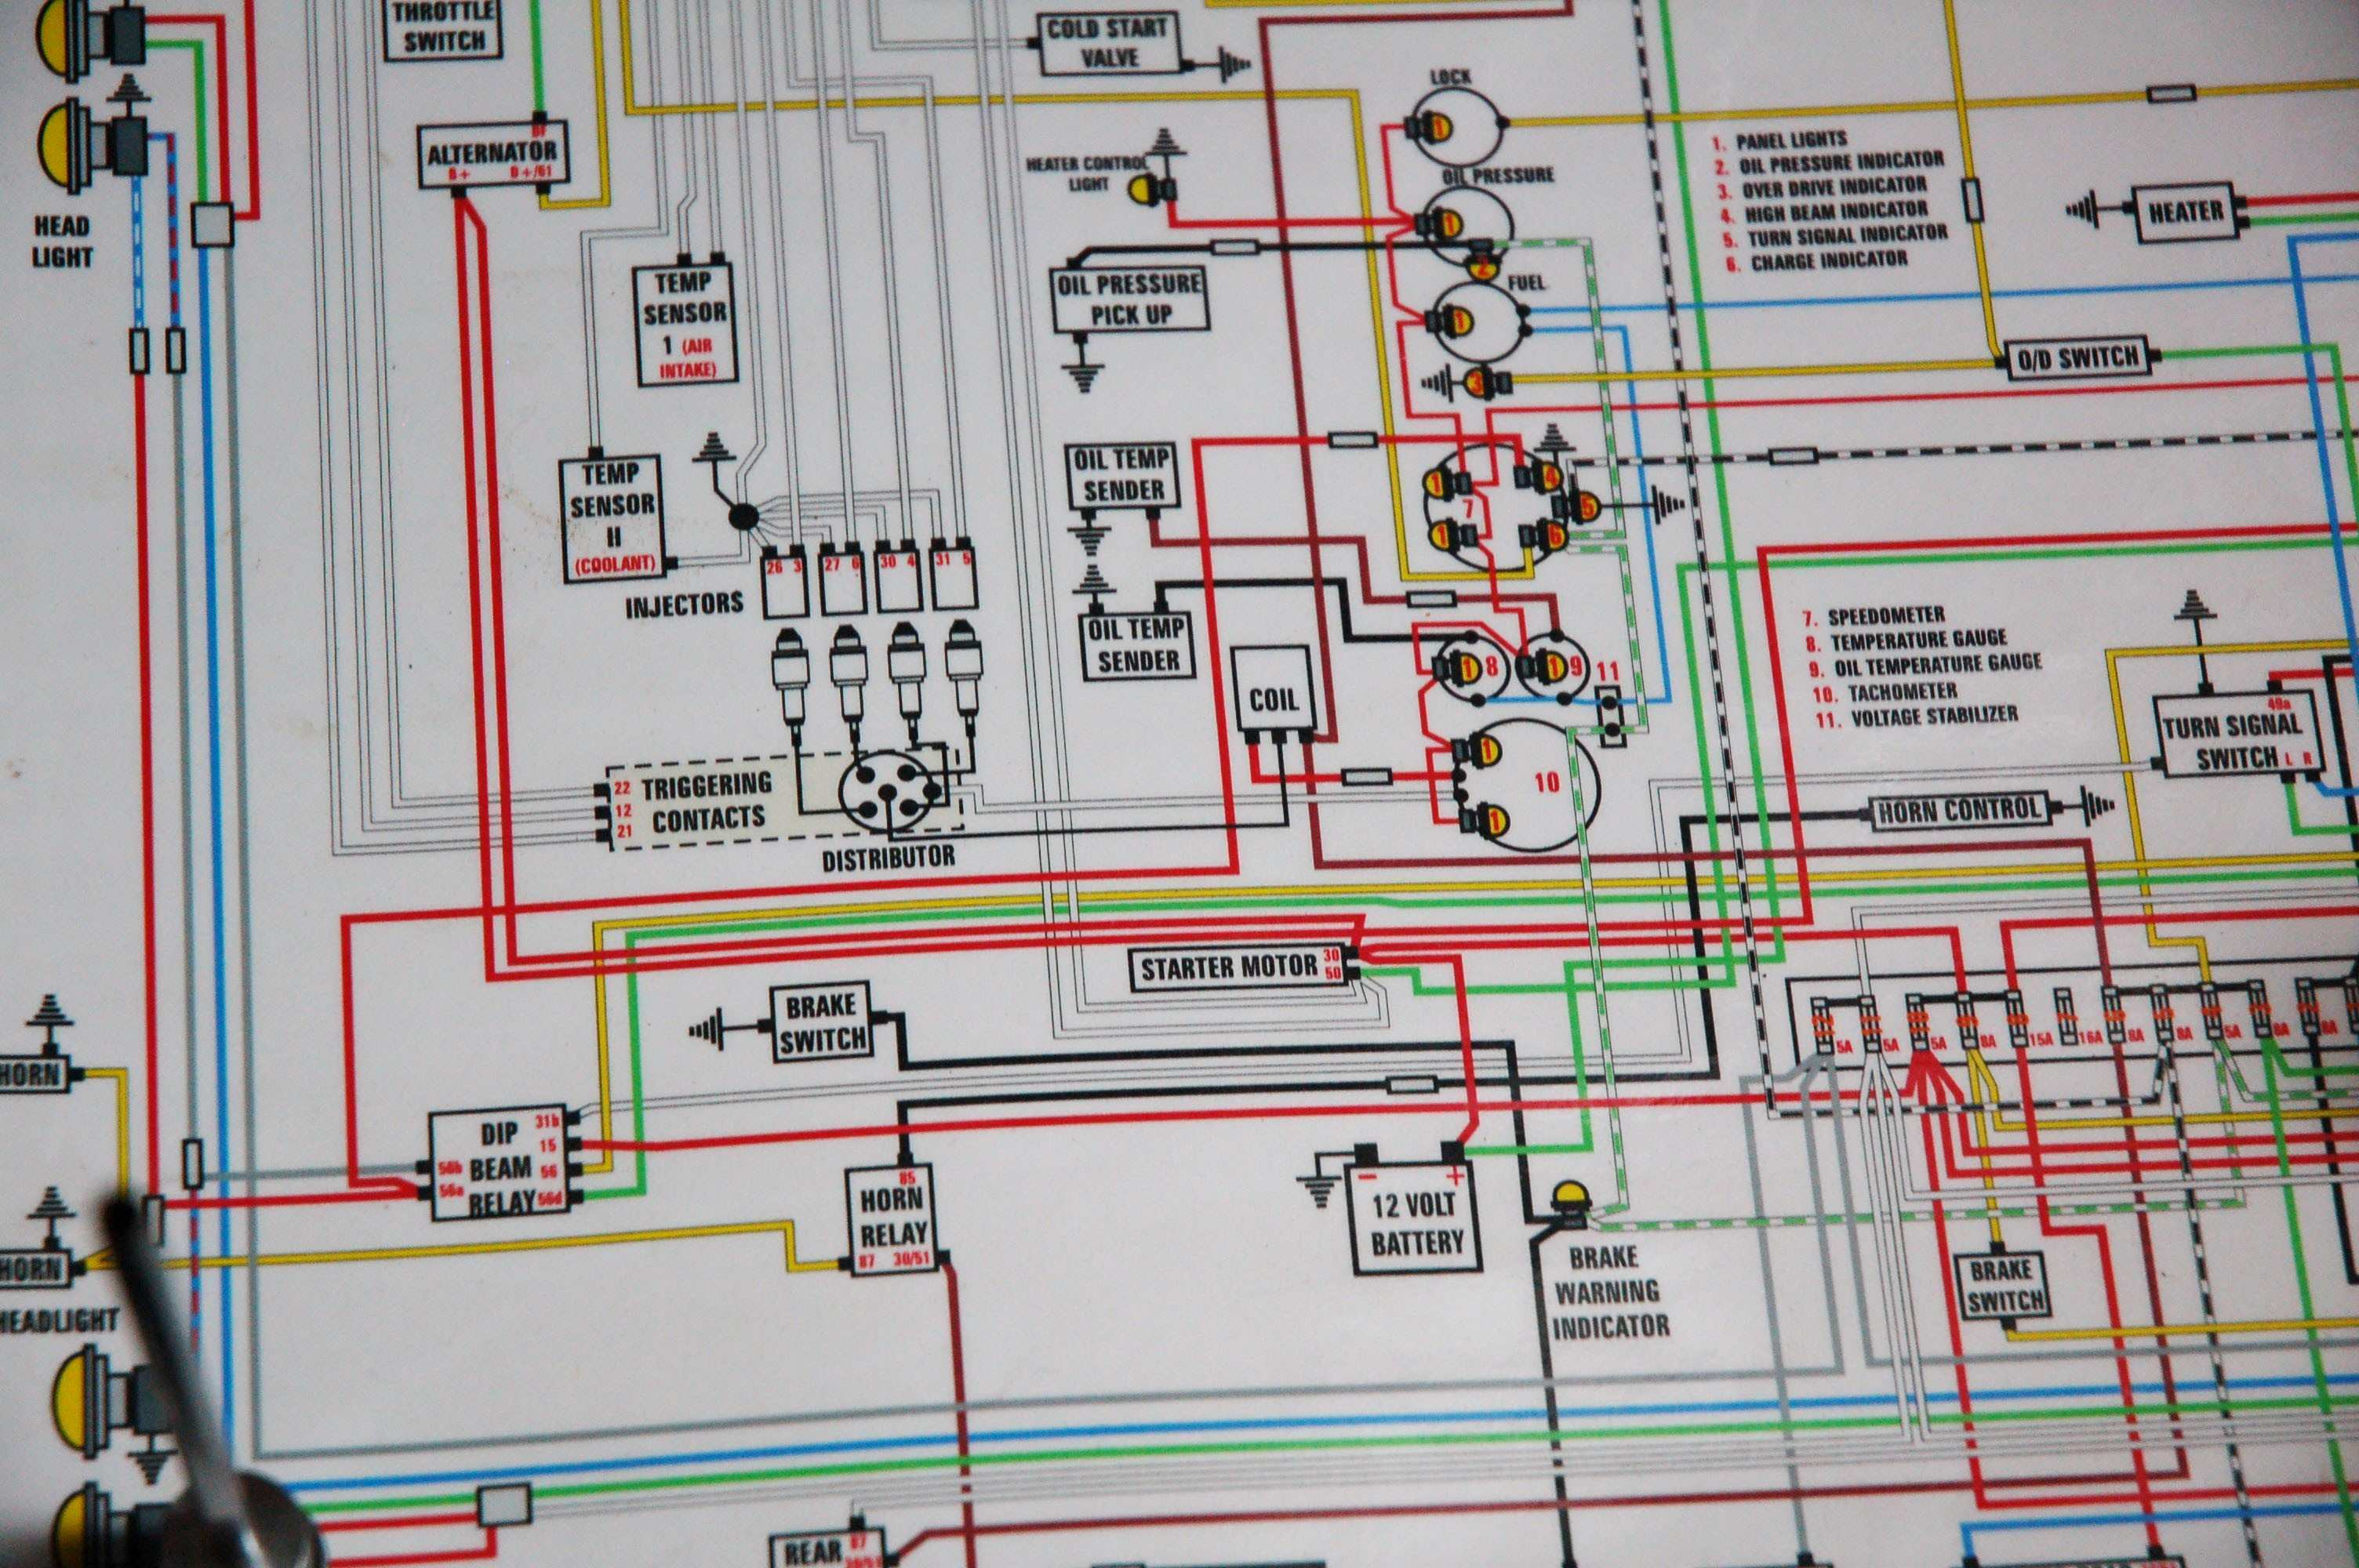 painless wiring harness diagram xjs painless wiring harness diagram horn painless wiring switch panel diagram gallery